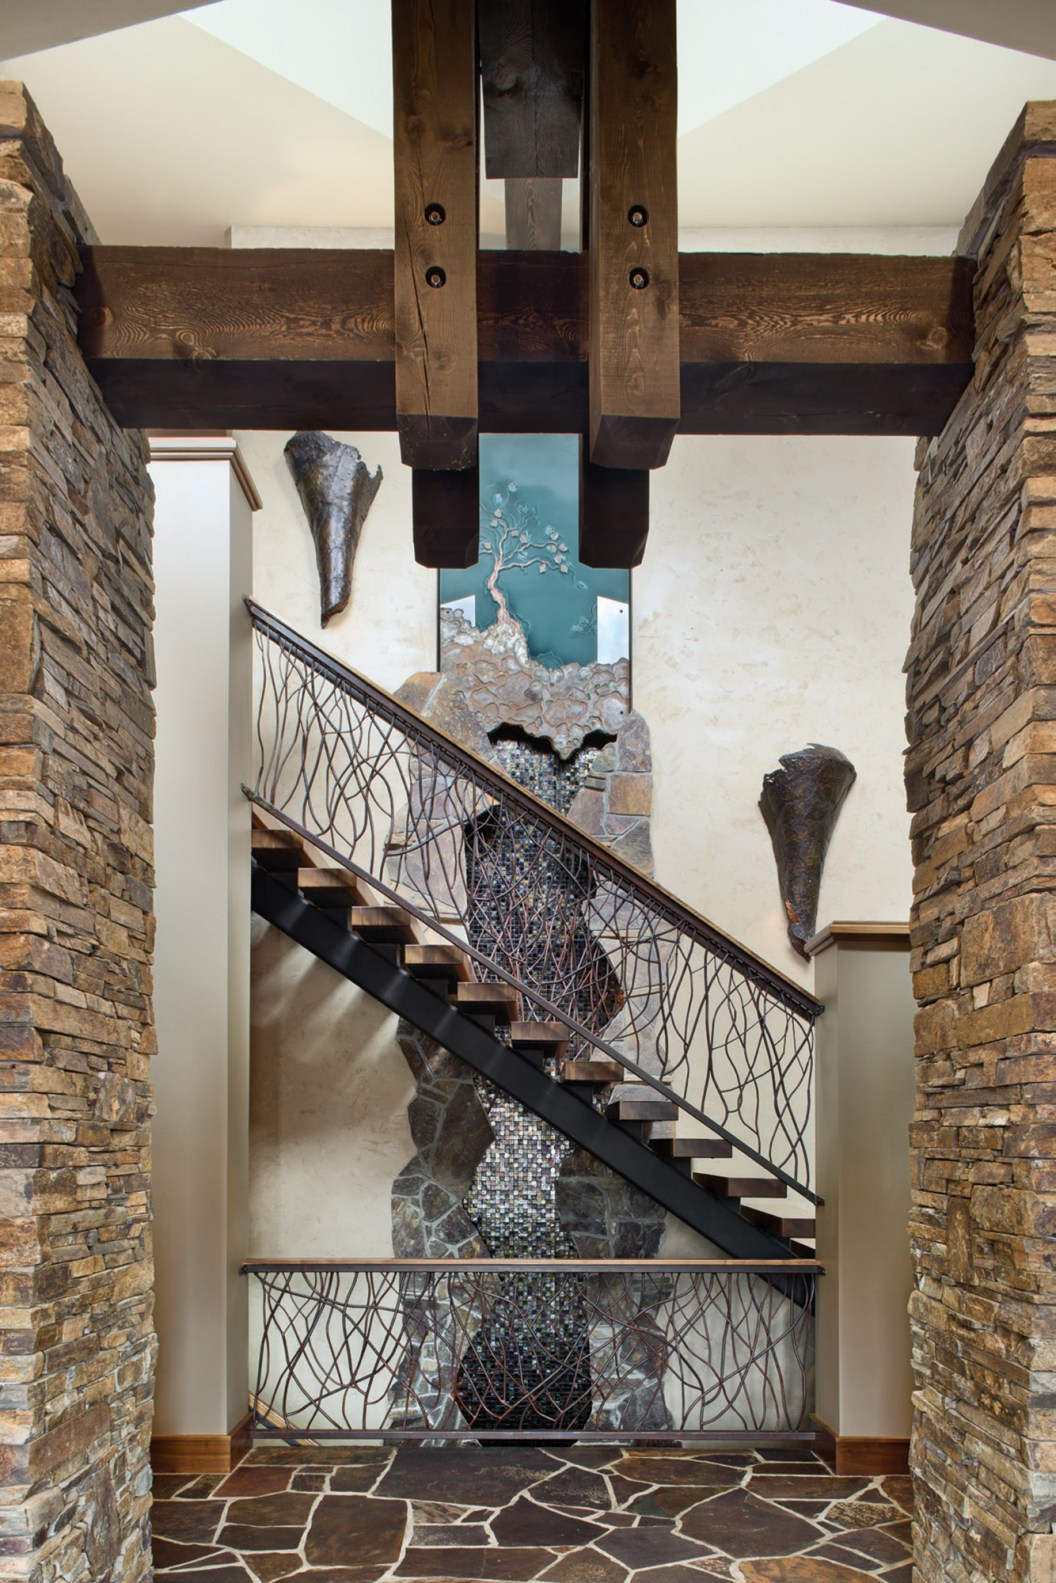 The front entry of the home offers a custom-made water feature that leads upstairs. The home's design wraps around the second-floor staircase.